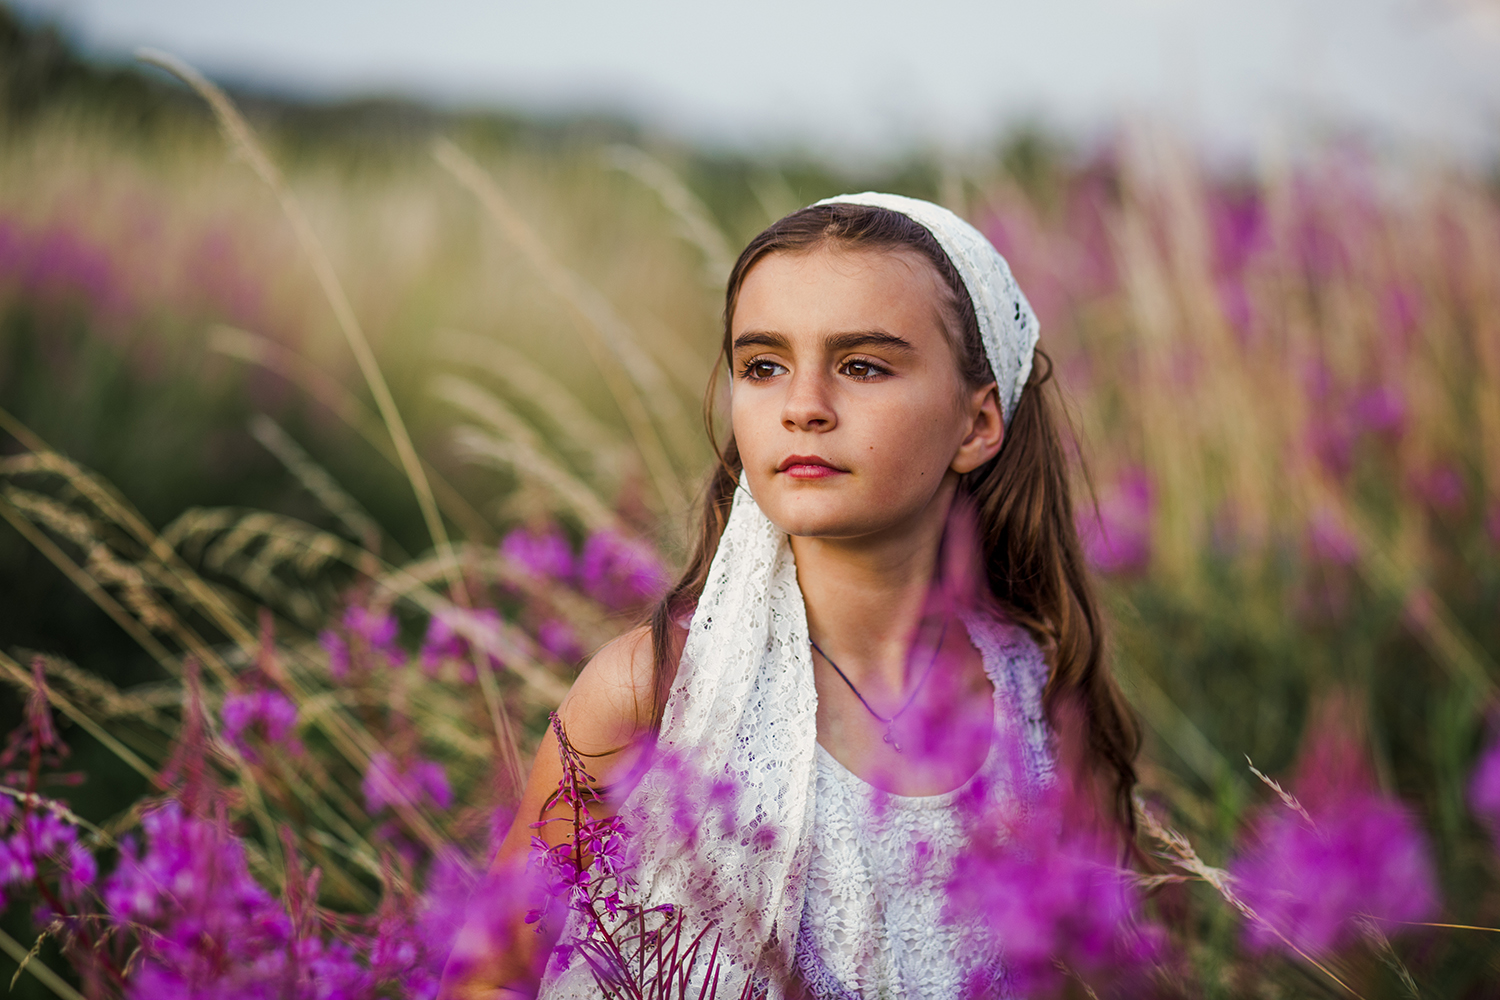 Outdoor portrait photography of a girl in Burry Port surrounded by pink summer flowers.